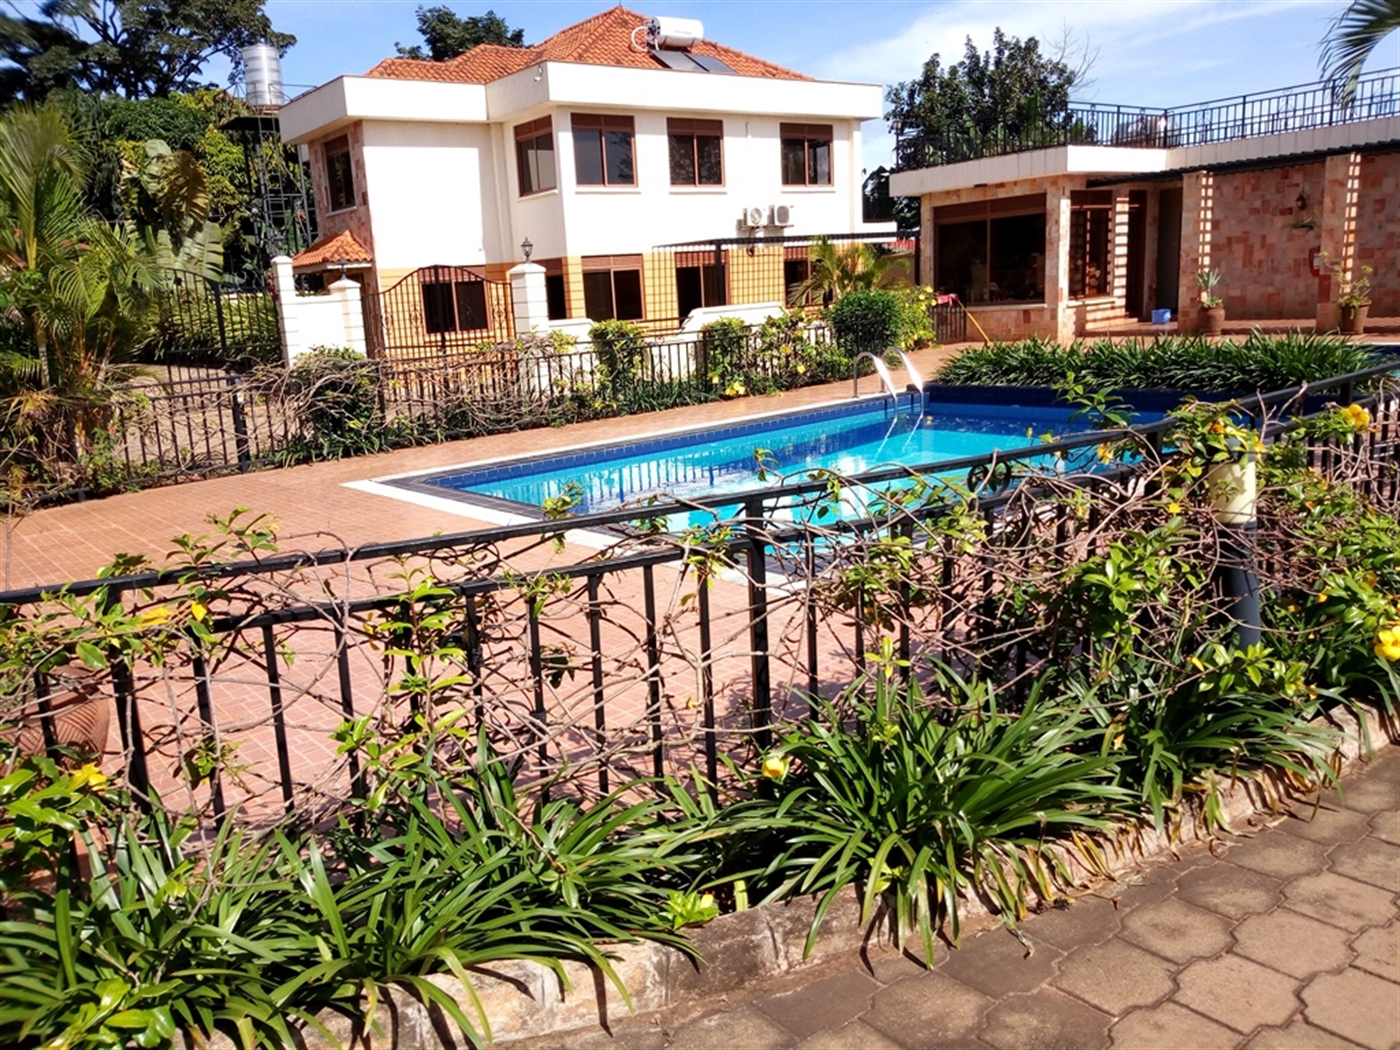 Mansion for rent in Luzira Kampala